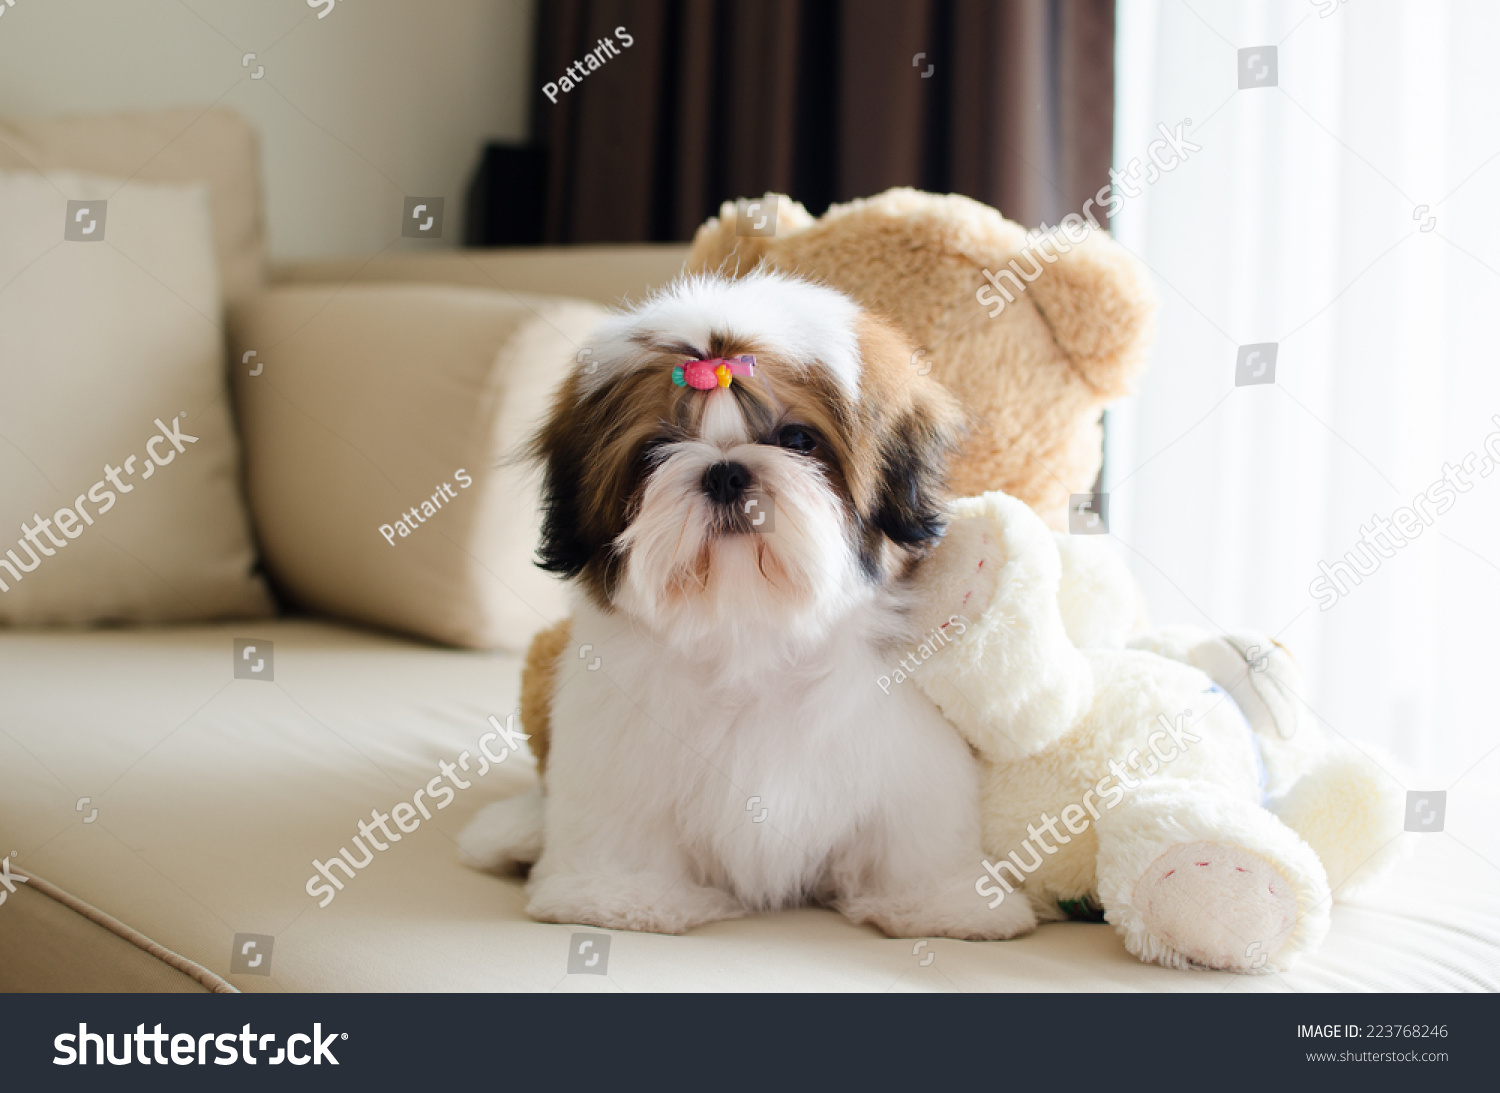 Cute Shih Tzu Puppy Sitting Looking Stock Photo Edit Now 223768246